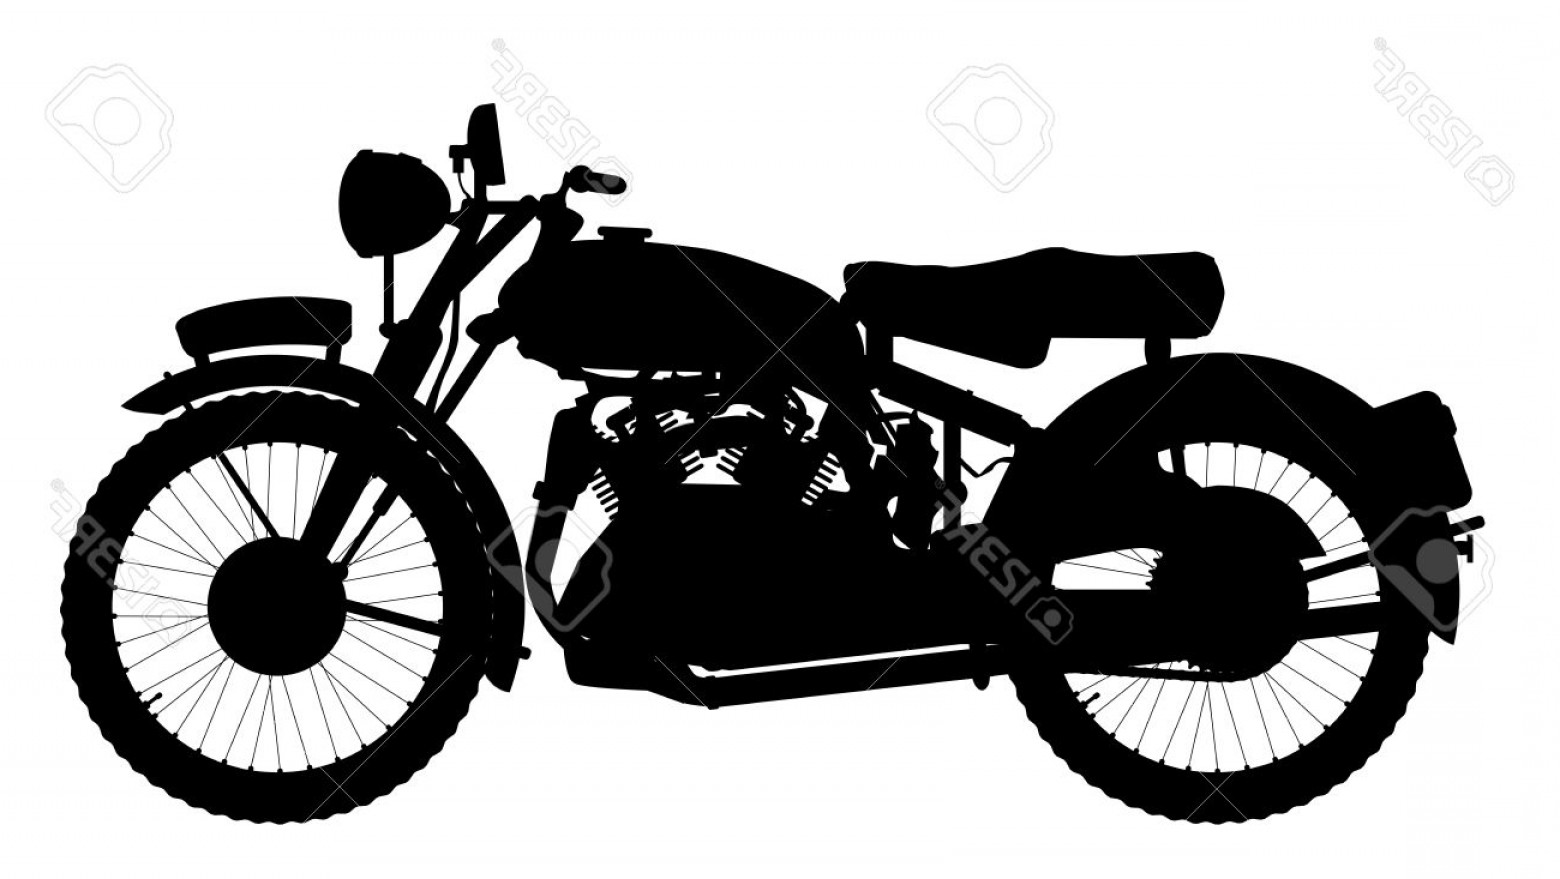 1560x879 Motorcycle Silhouette Vector With Pipes Arenawp